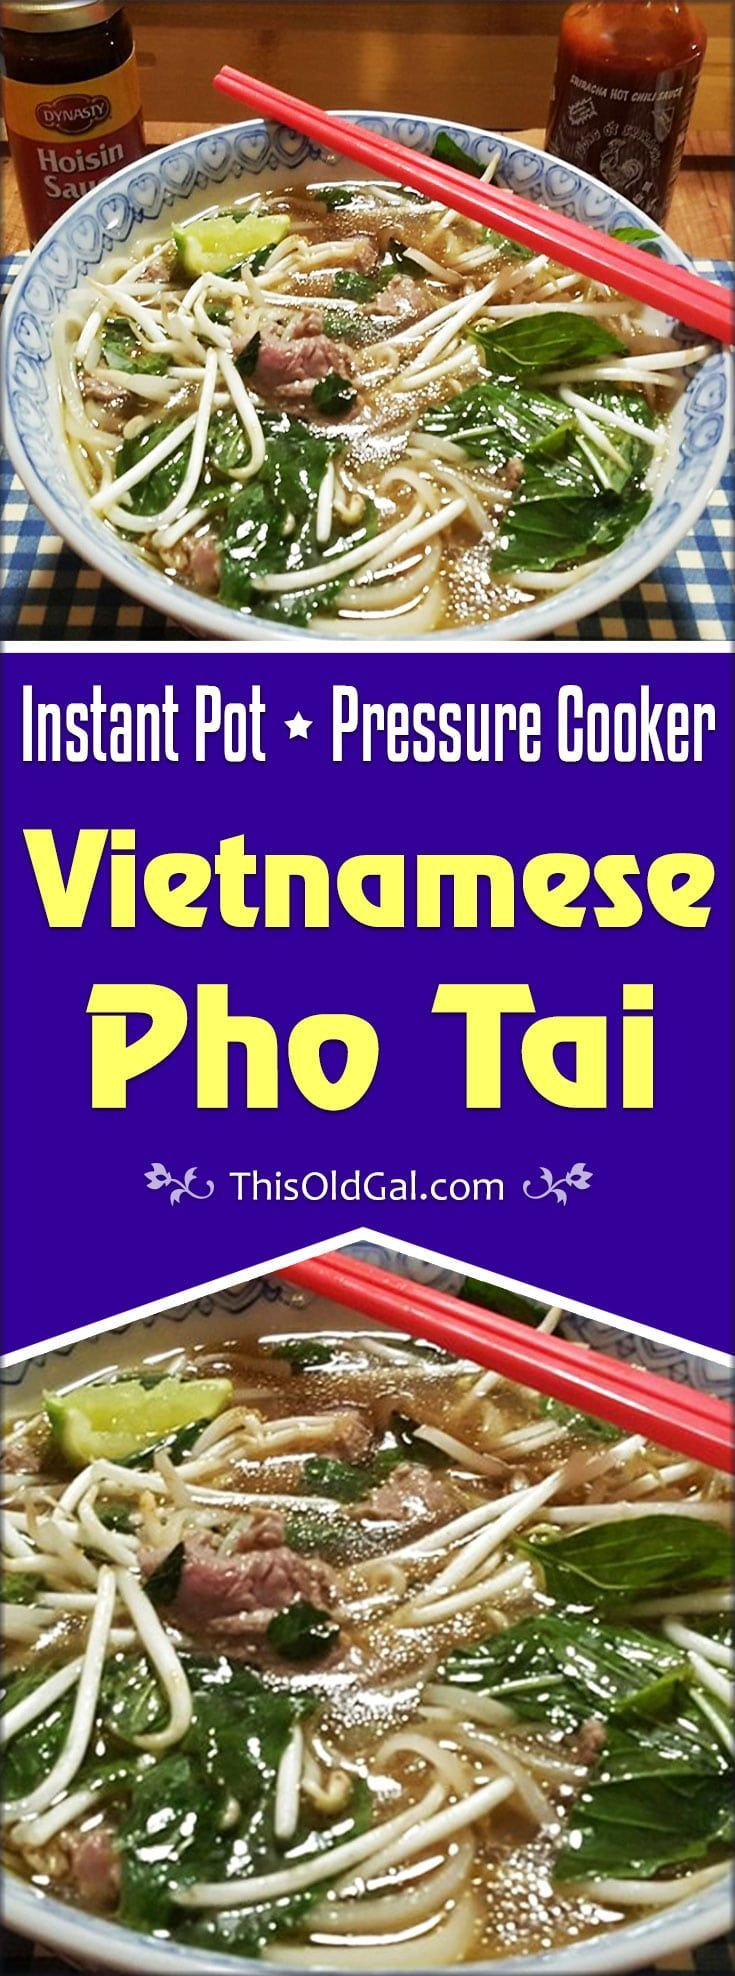 Pressure Cooker Vietnamese Pho Tai tastes as good but is better than in an authentic Vietnamese restaurant because it is made at home. via @thisoldgalcooks